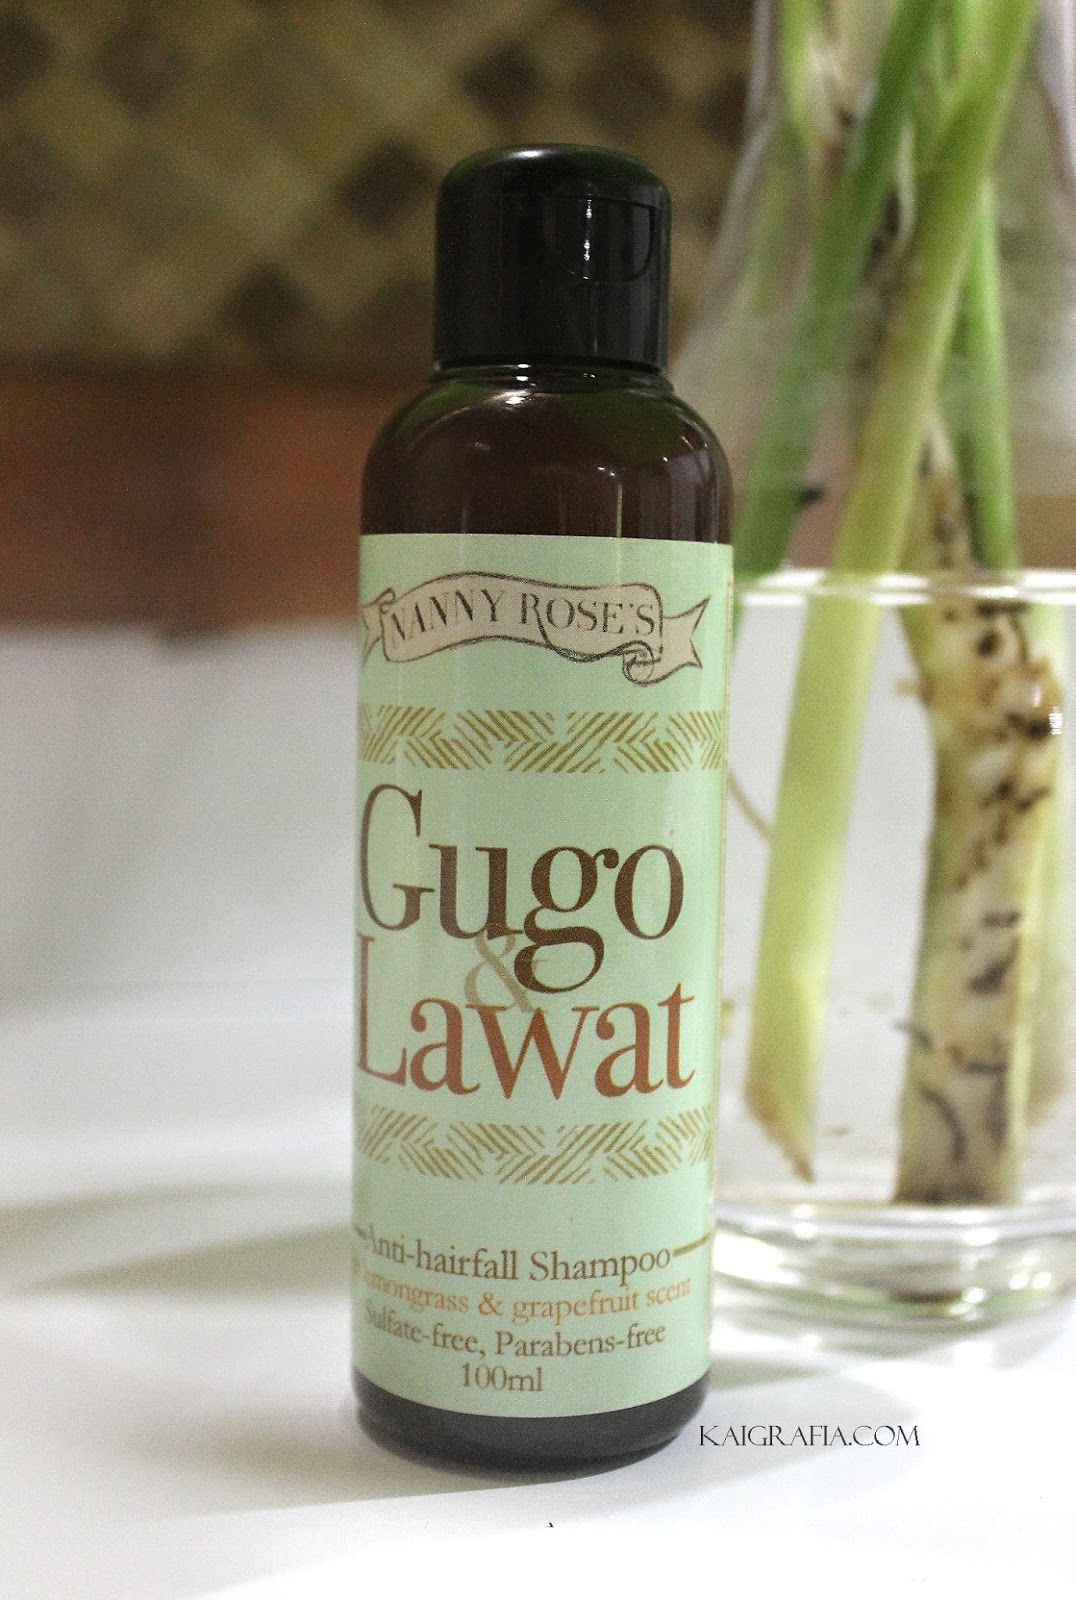 Nanny Rose Gugo Lawat Shampoo review